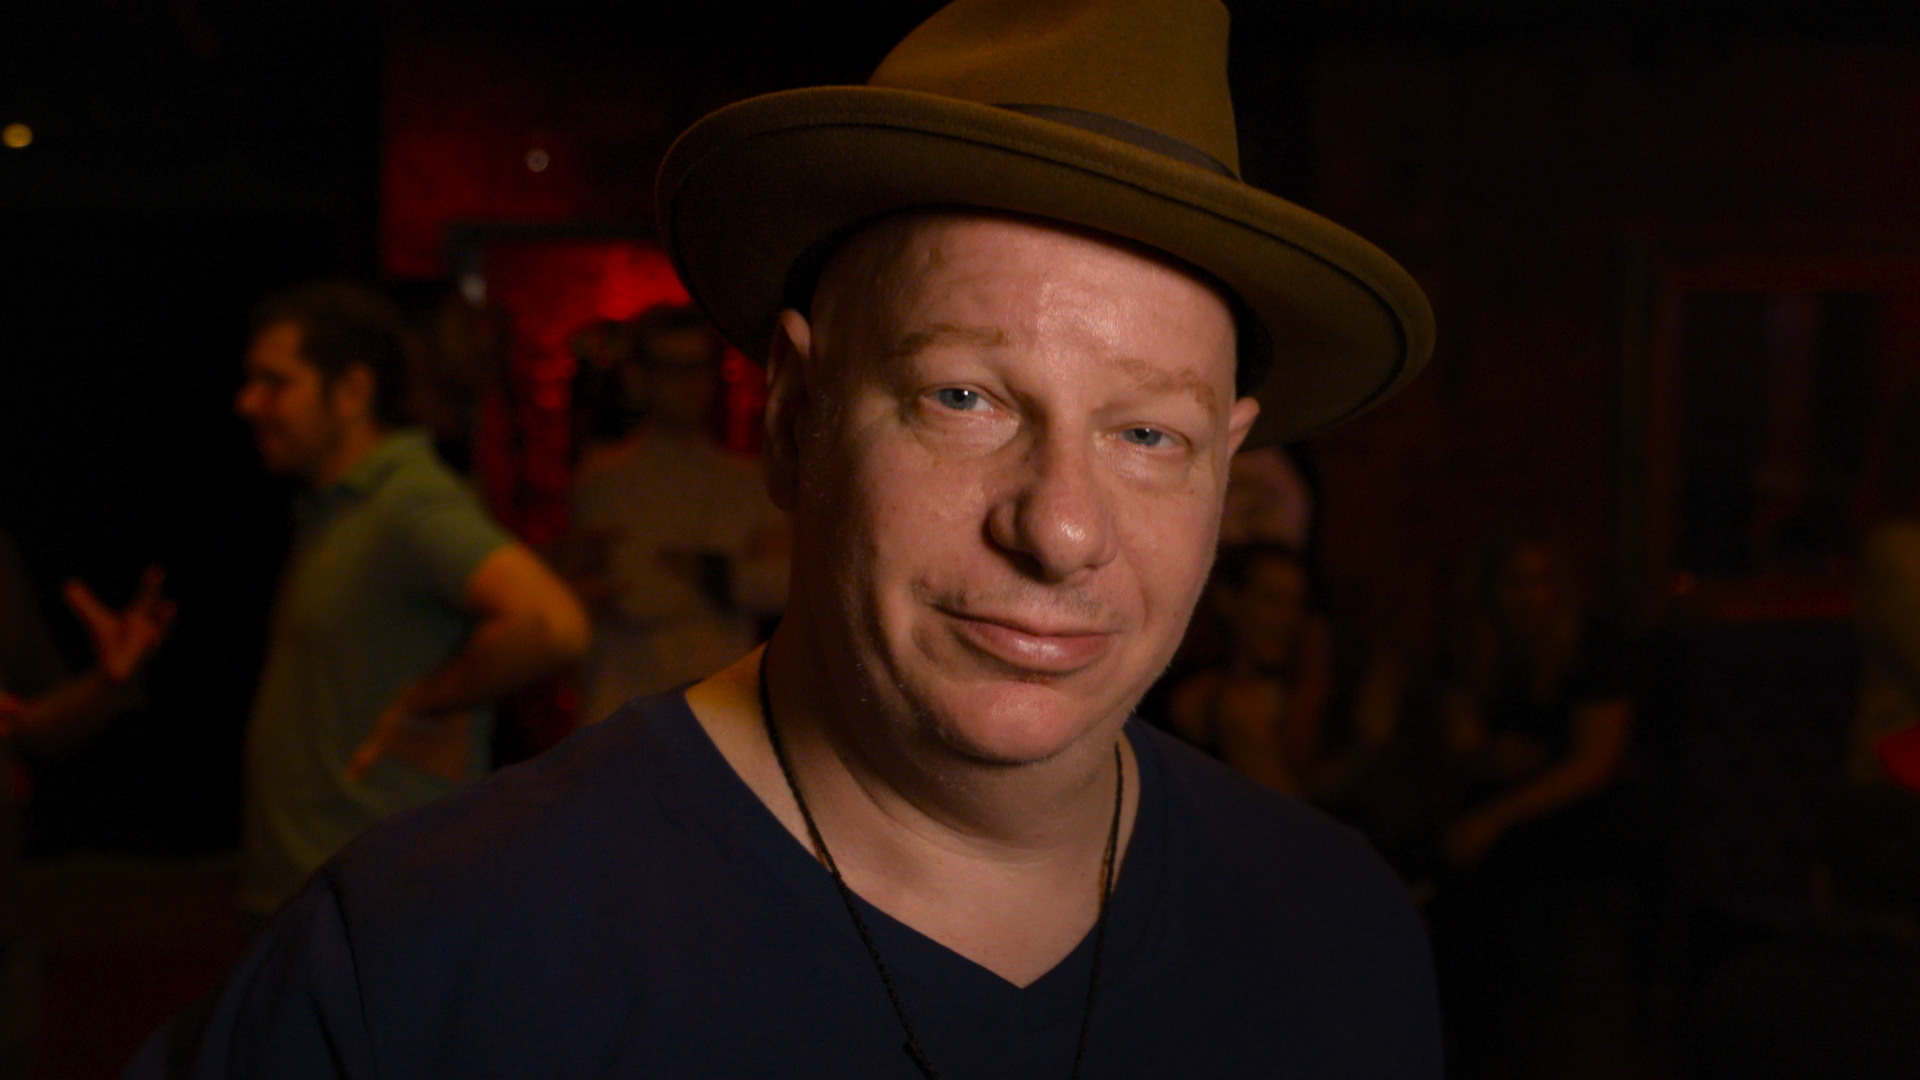 ROAST BATTLE - HOW TO ROAST WITH JEFF ROSS